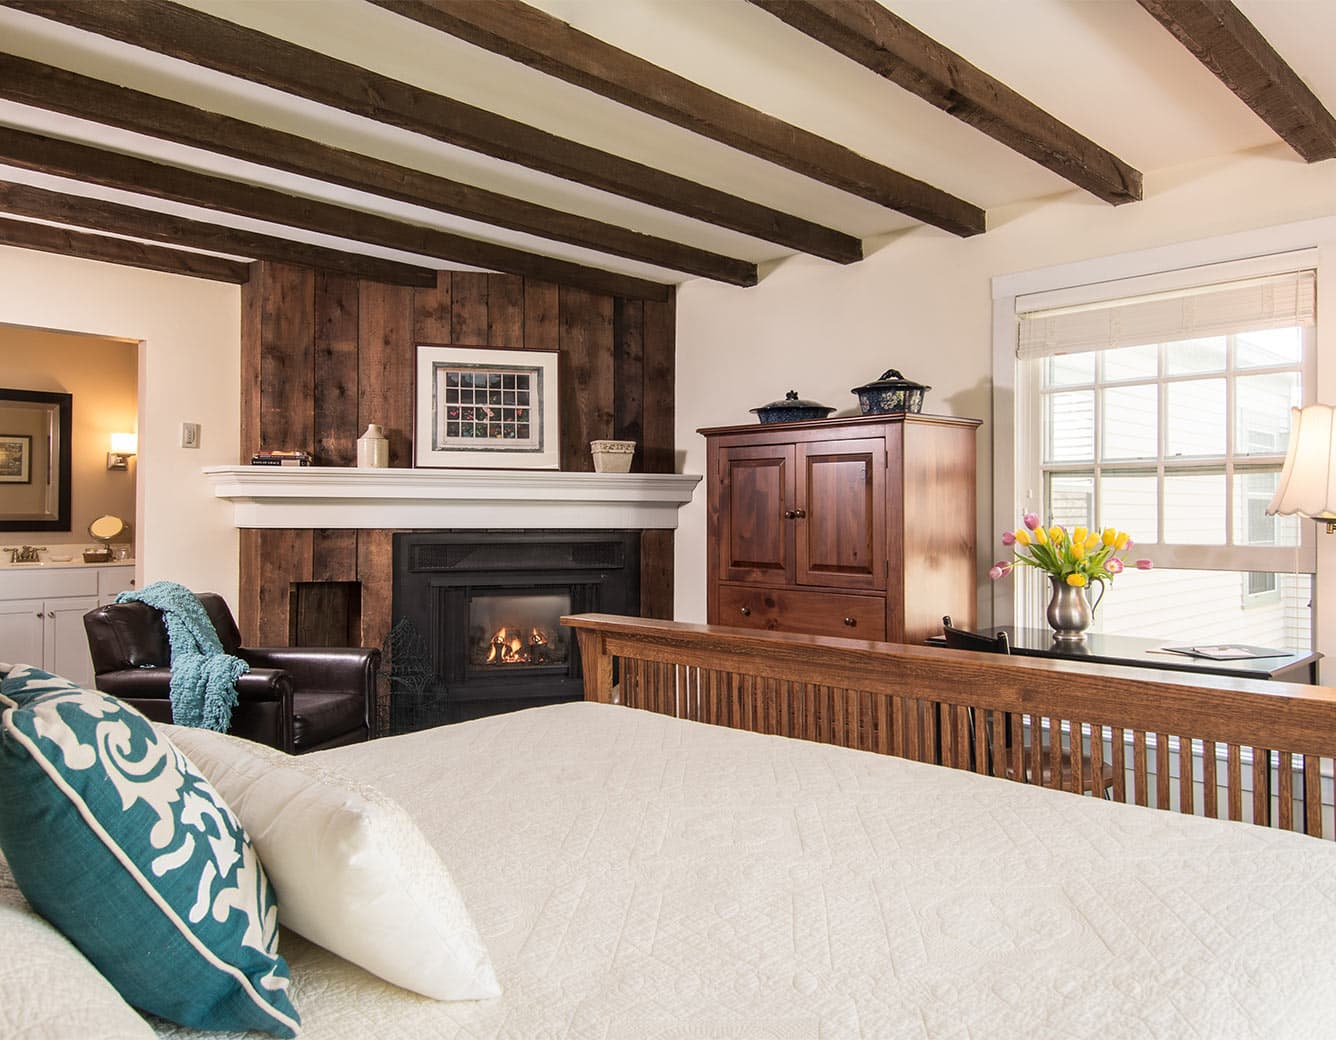 Soft bed with fireplace in background